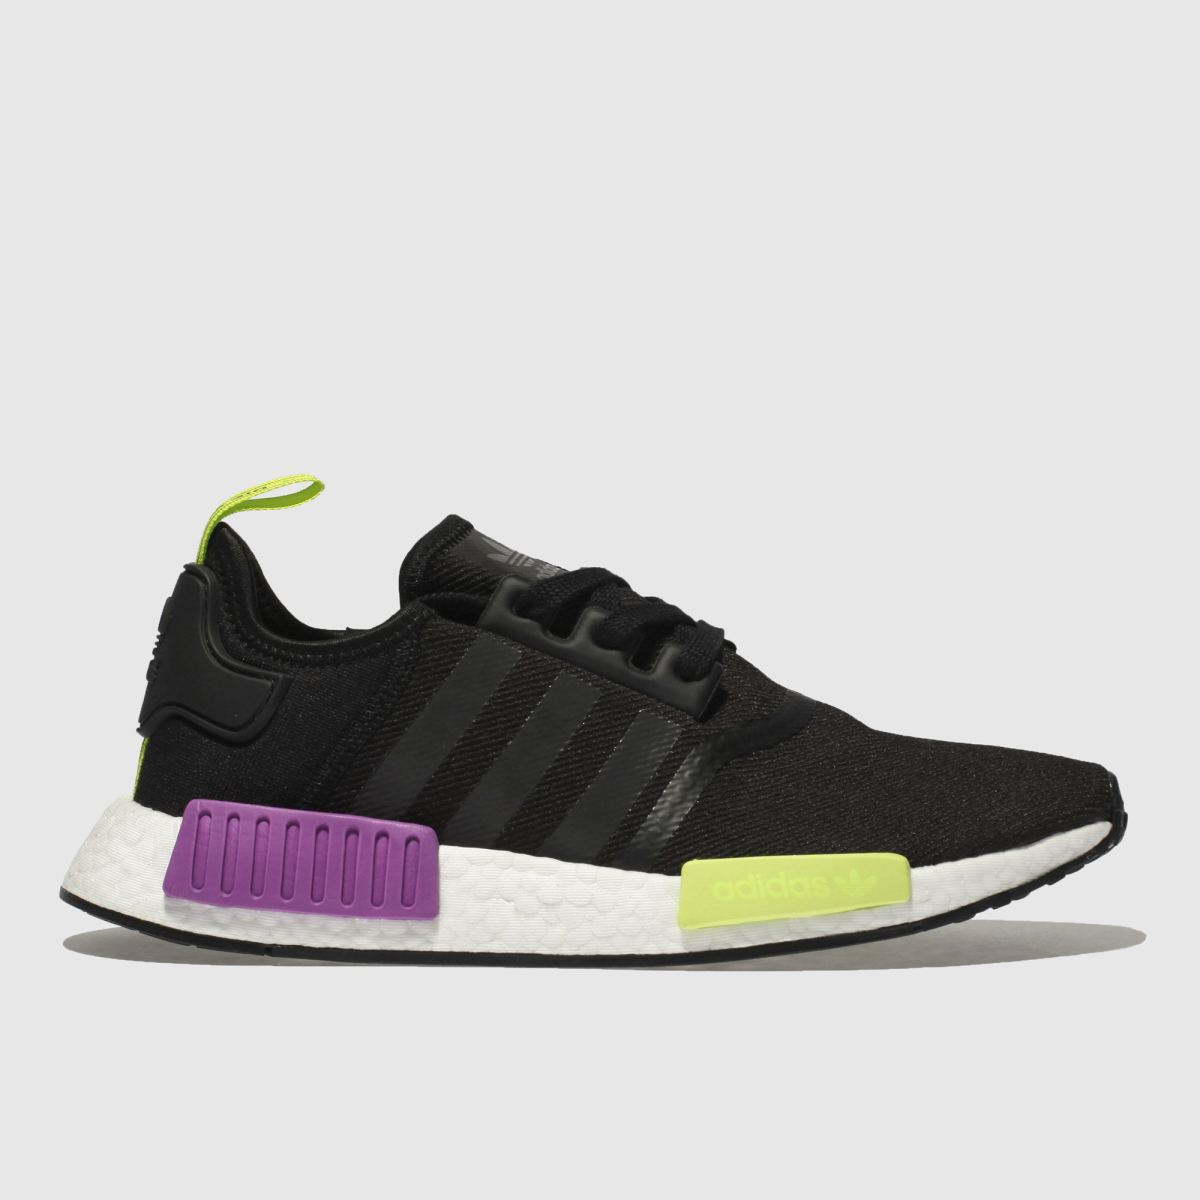 Adidas Black & Purple Nmd R1 Trainers